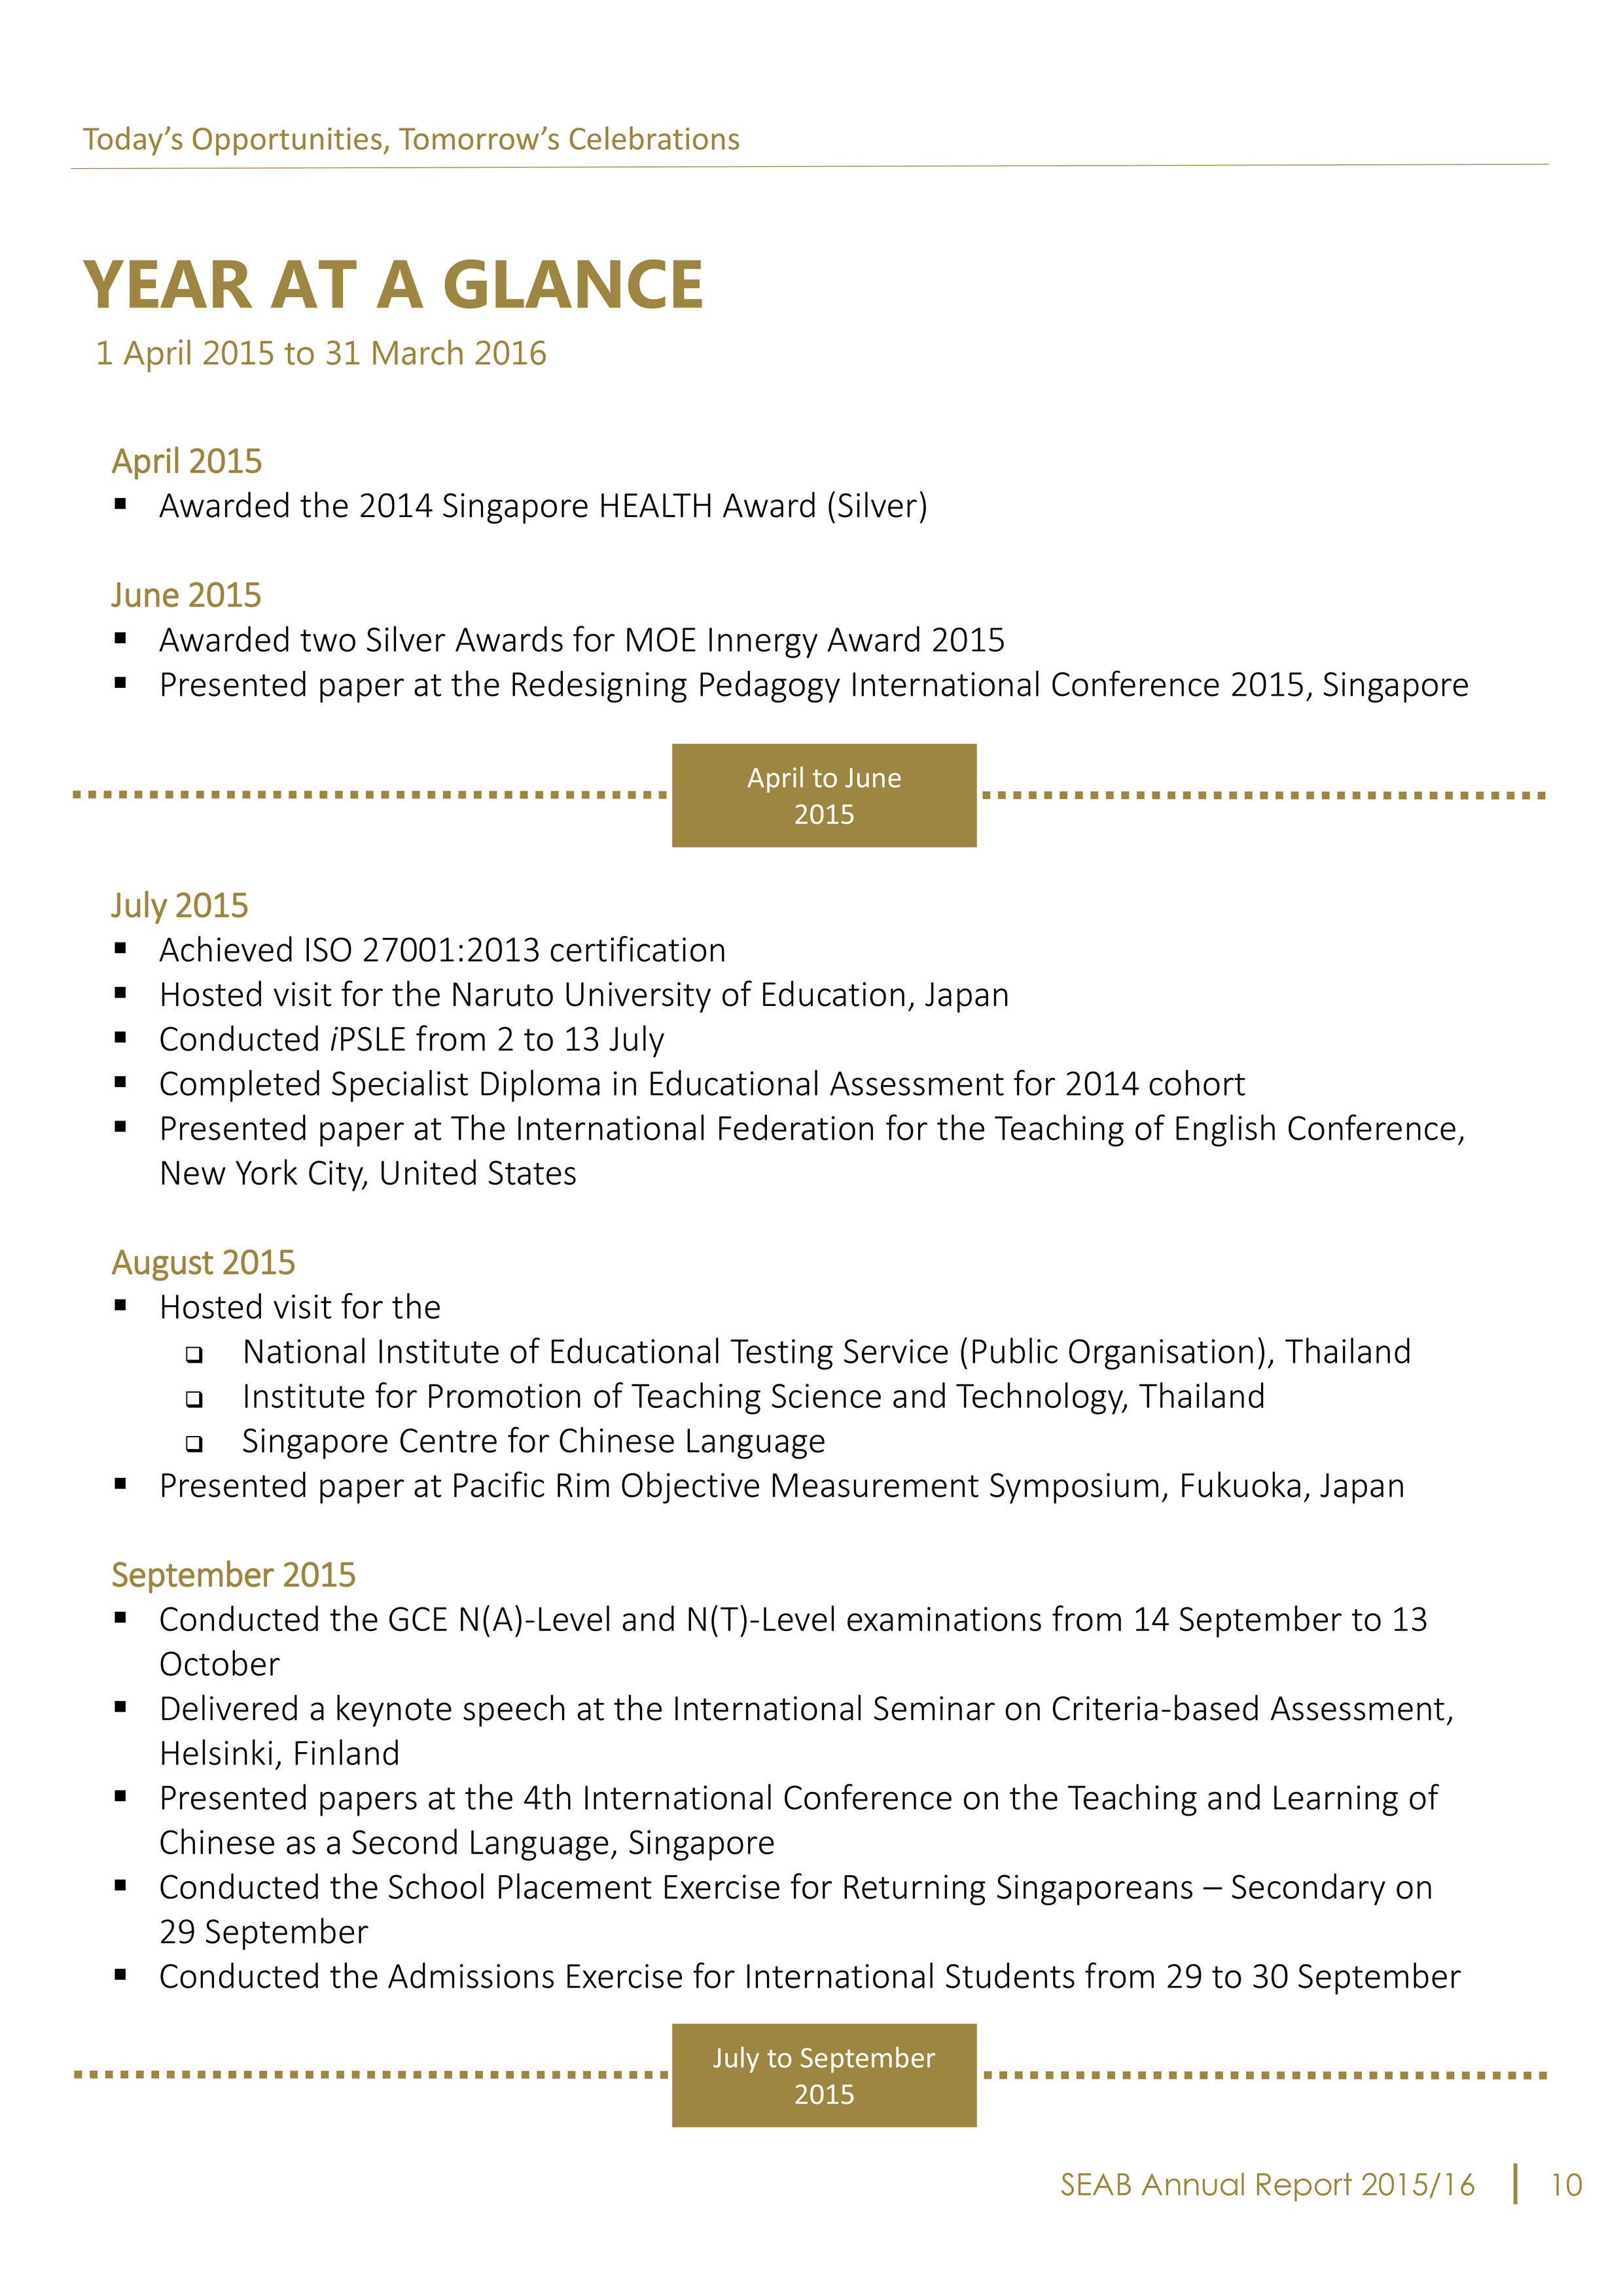 seab annual report 2015 2016 year at a glance